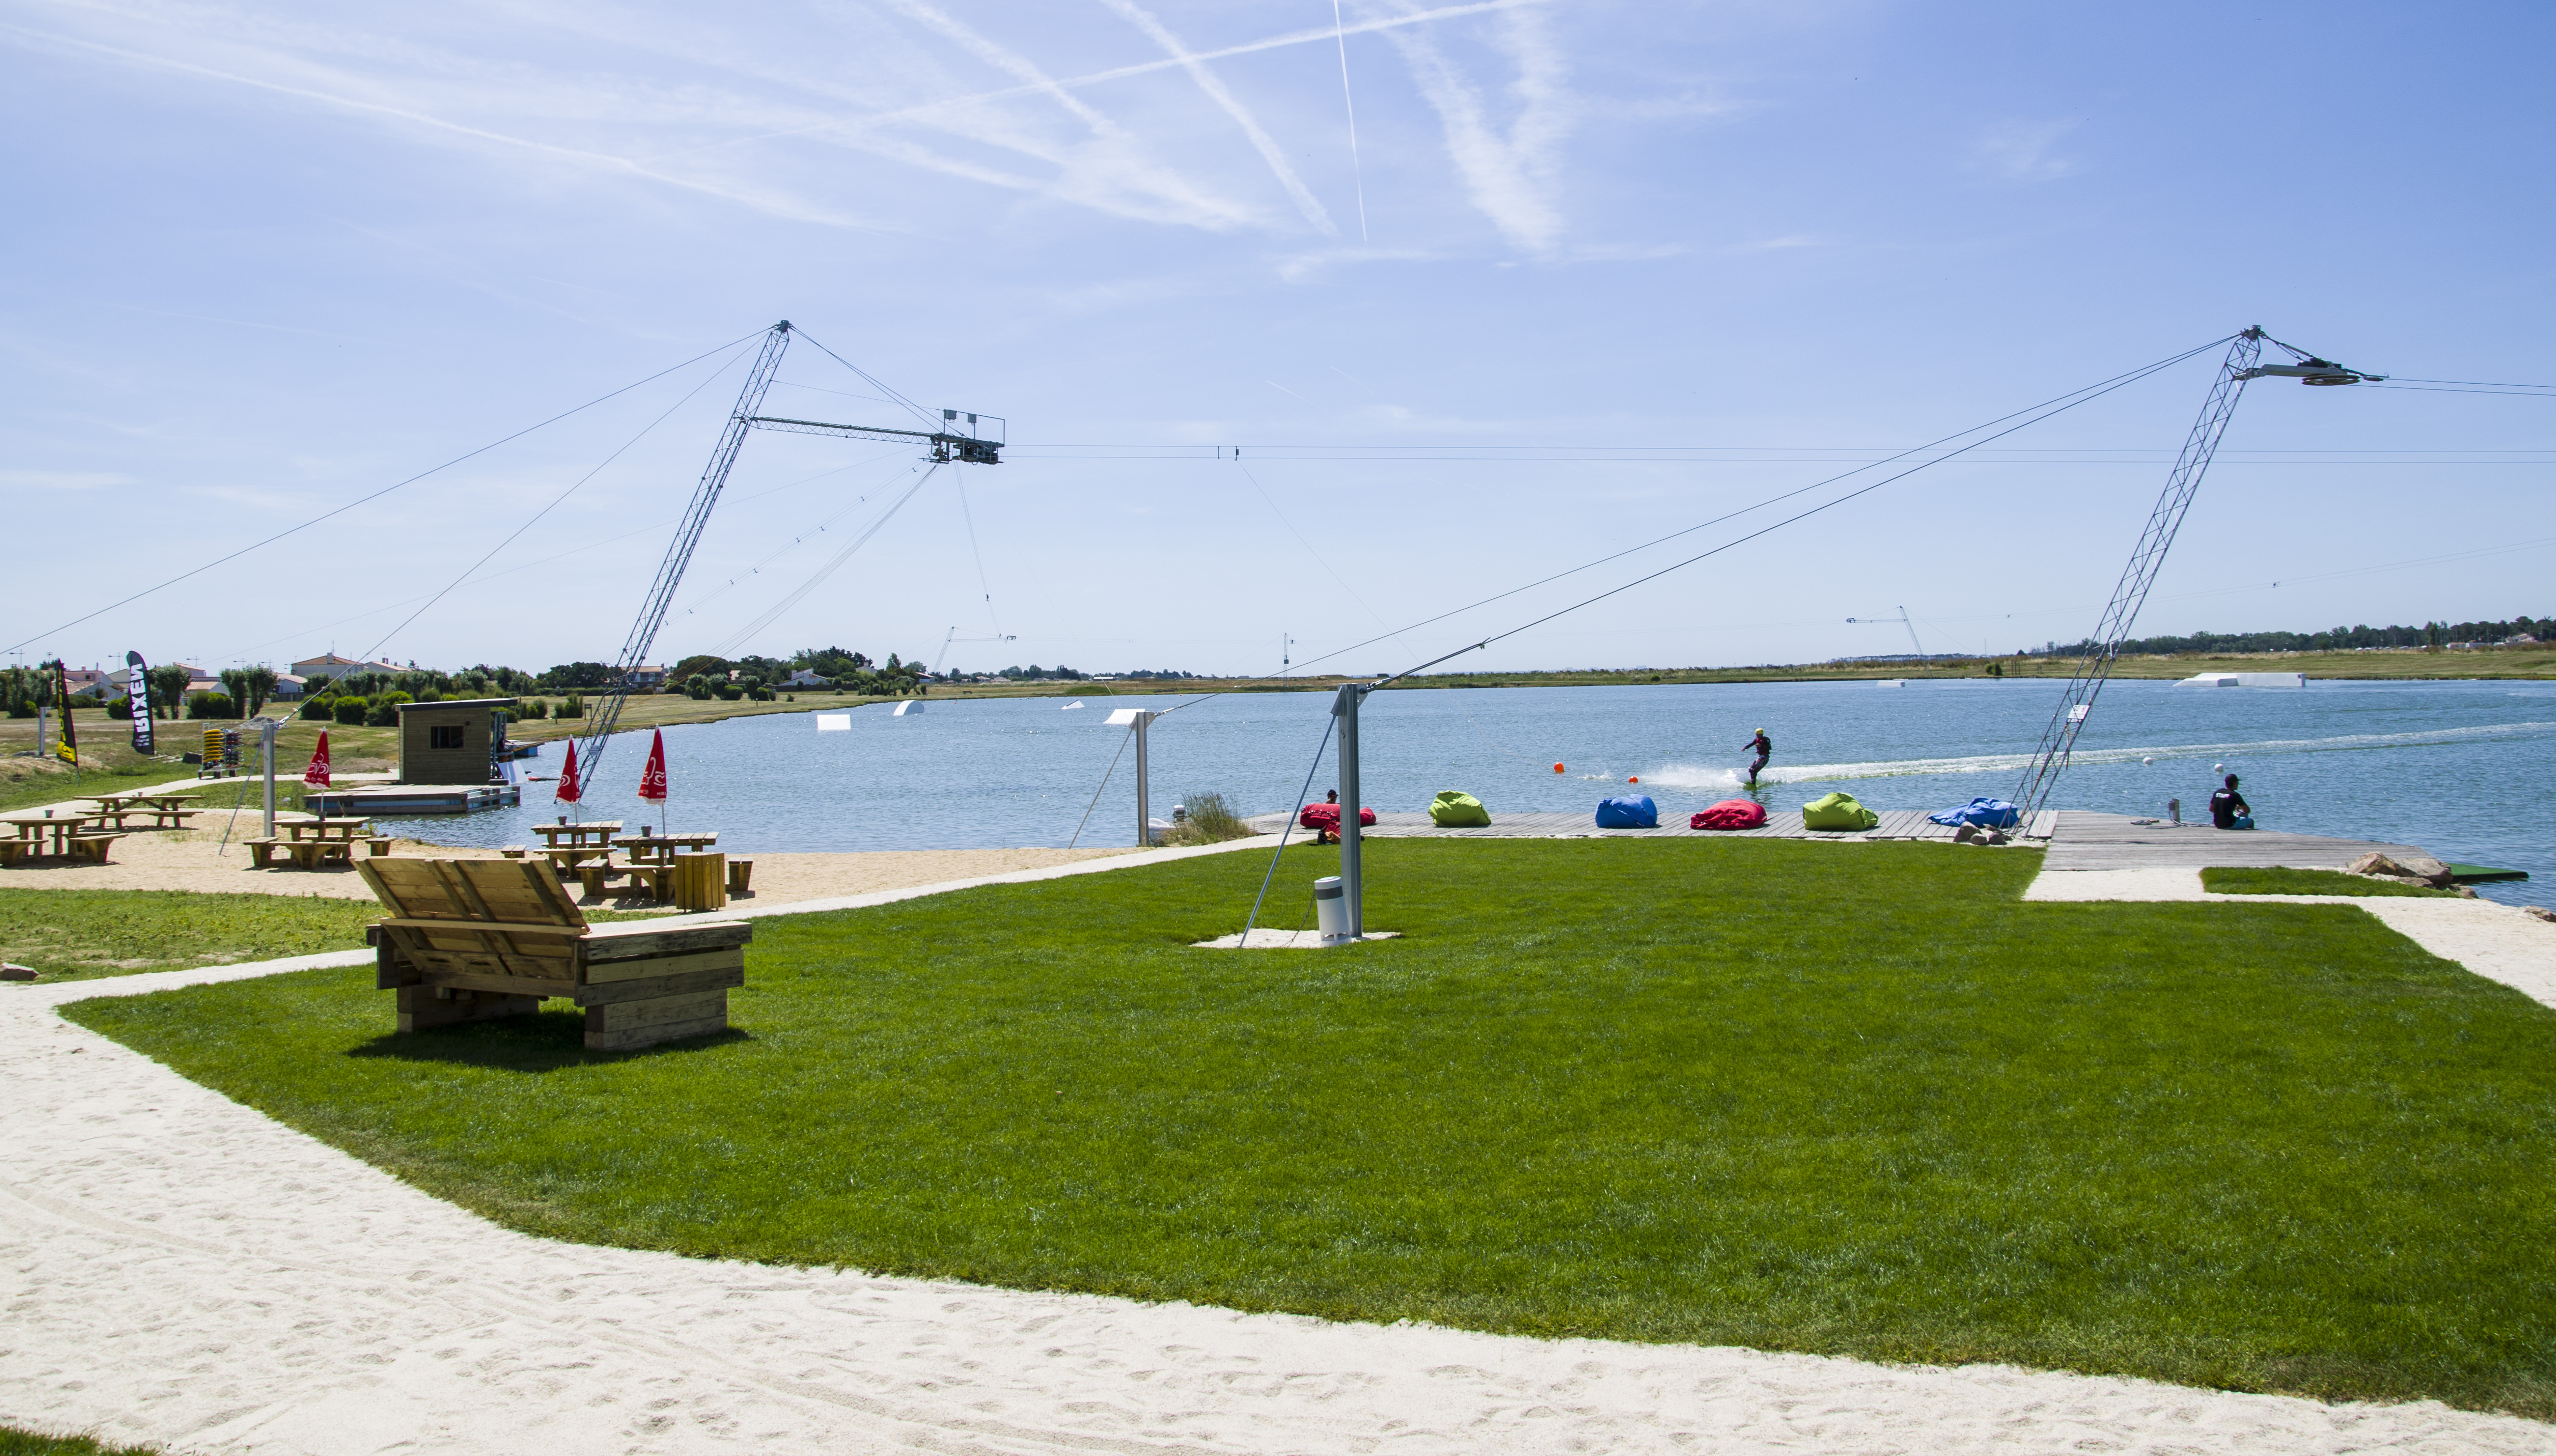 Atlantic-Wakepark in l'Aiguillon sur Mer.